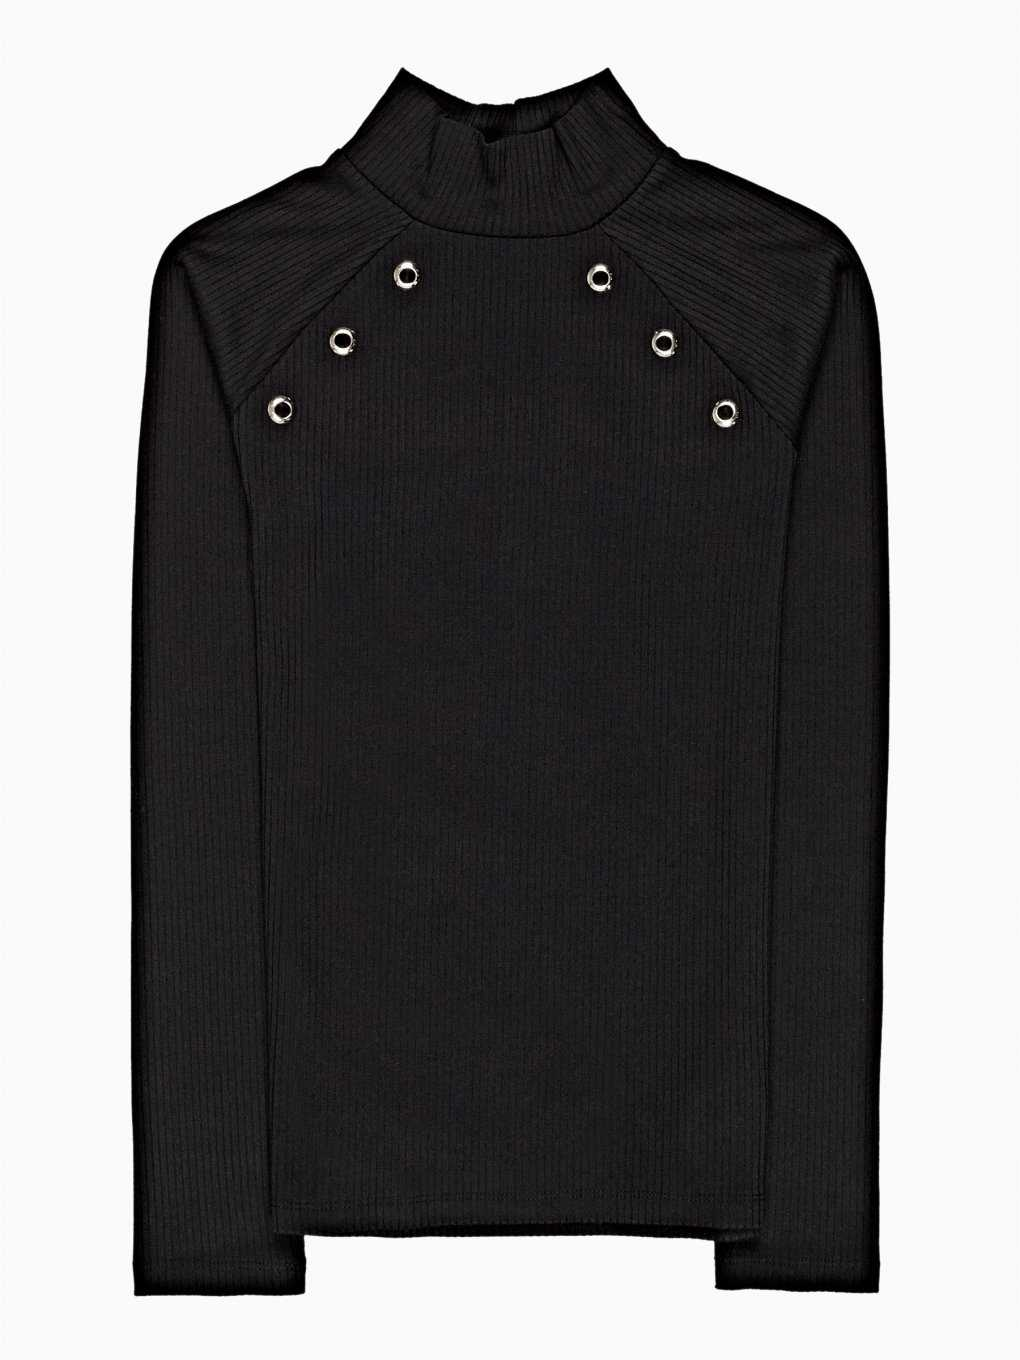 HIGH NECK TOP WITH METAL EYELETS